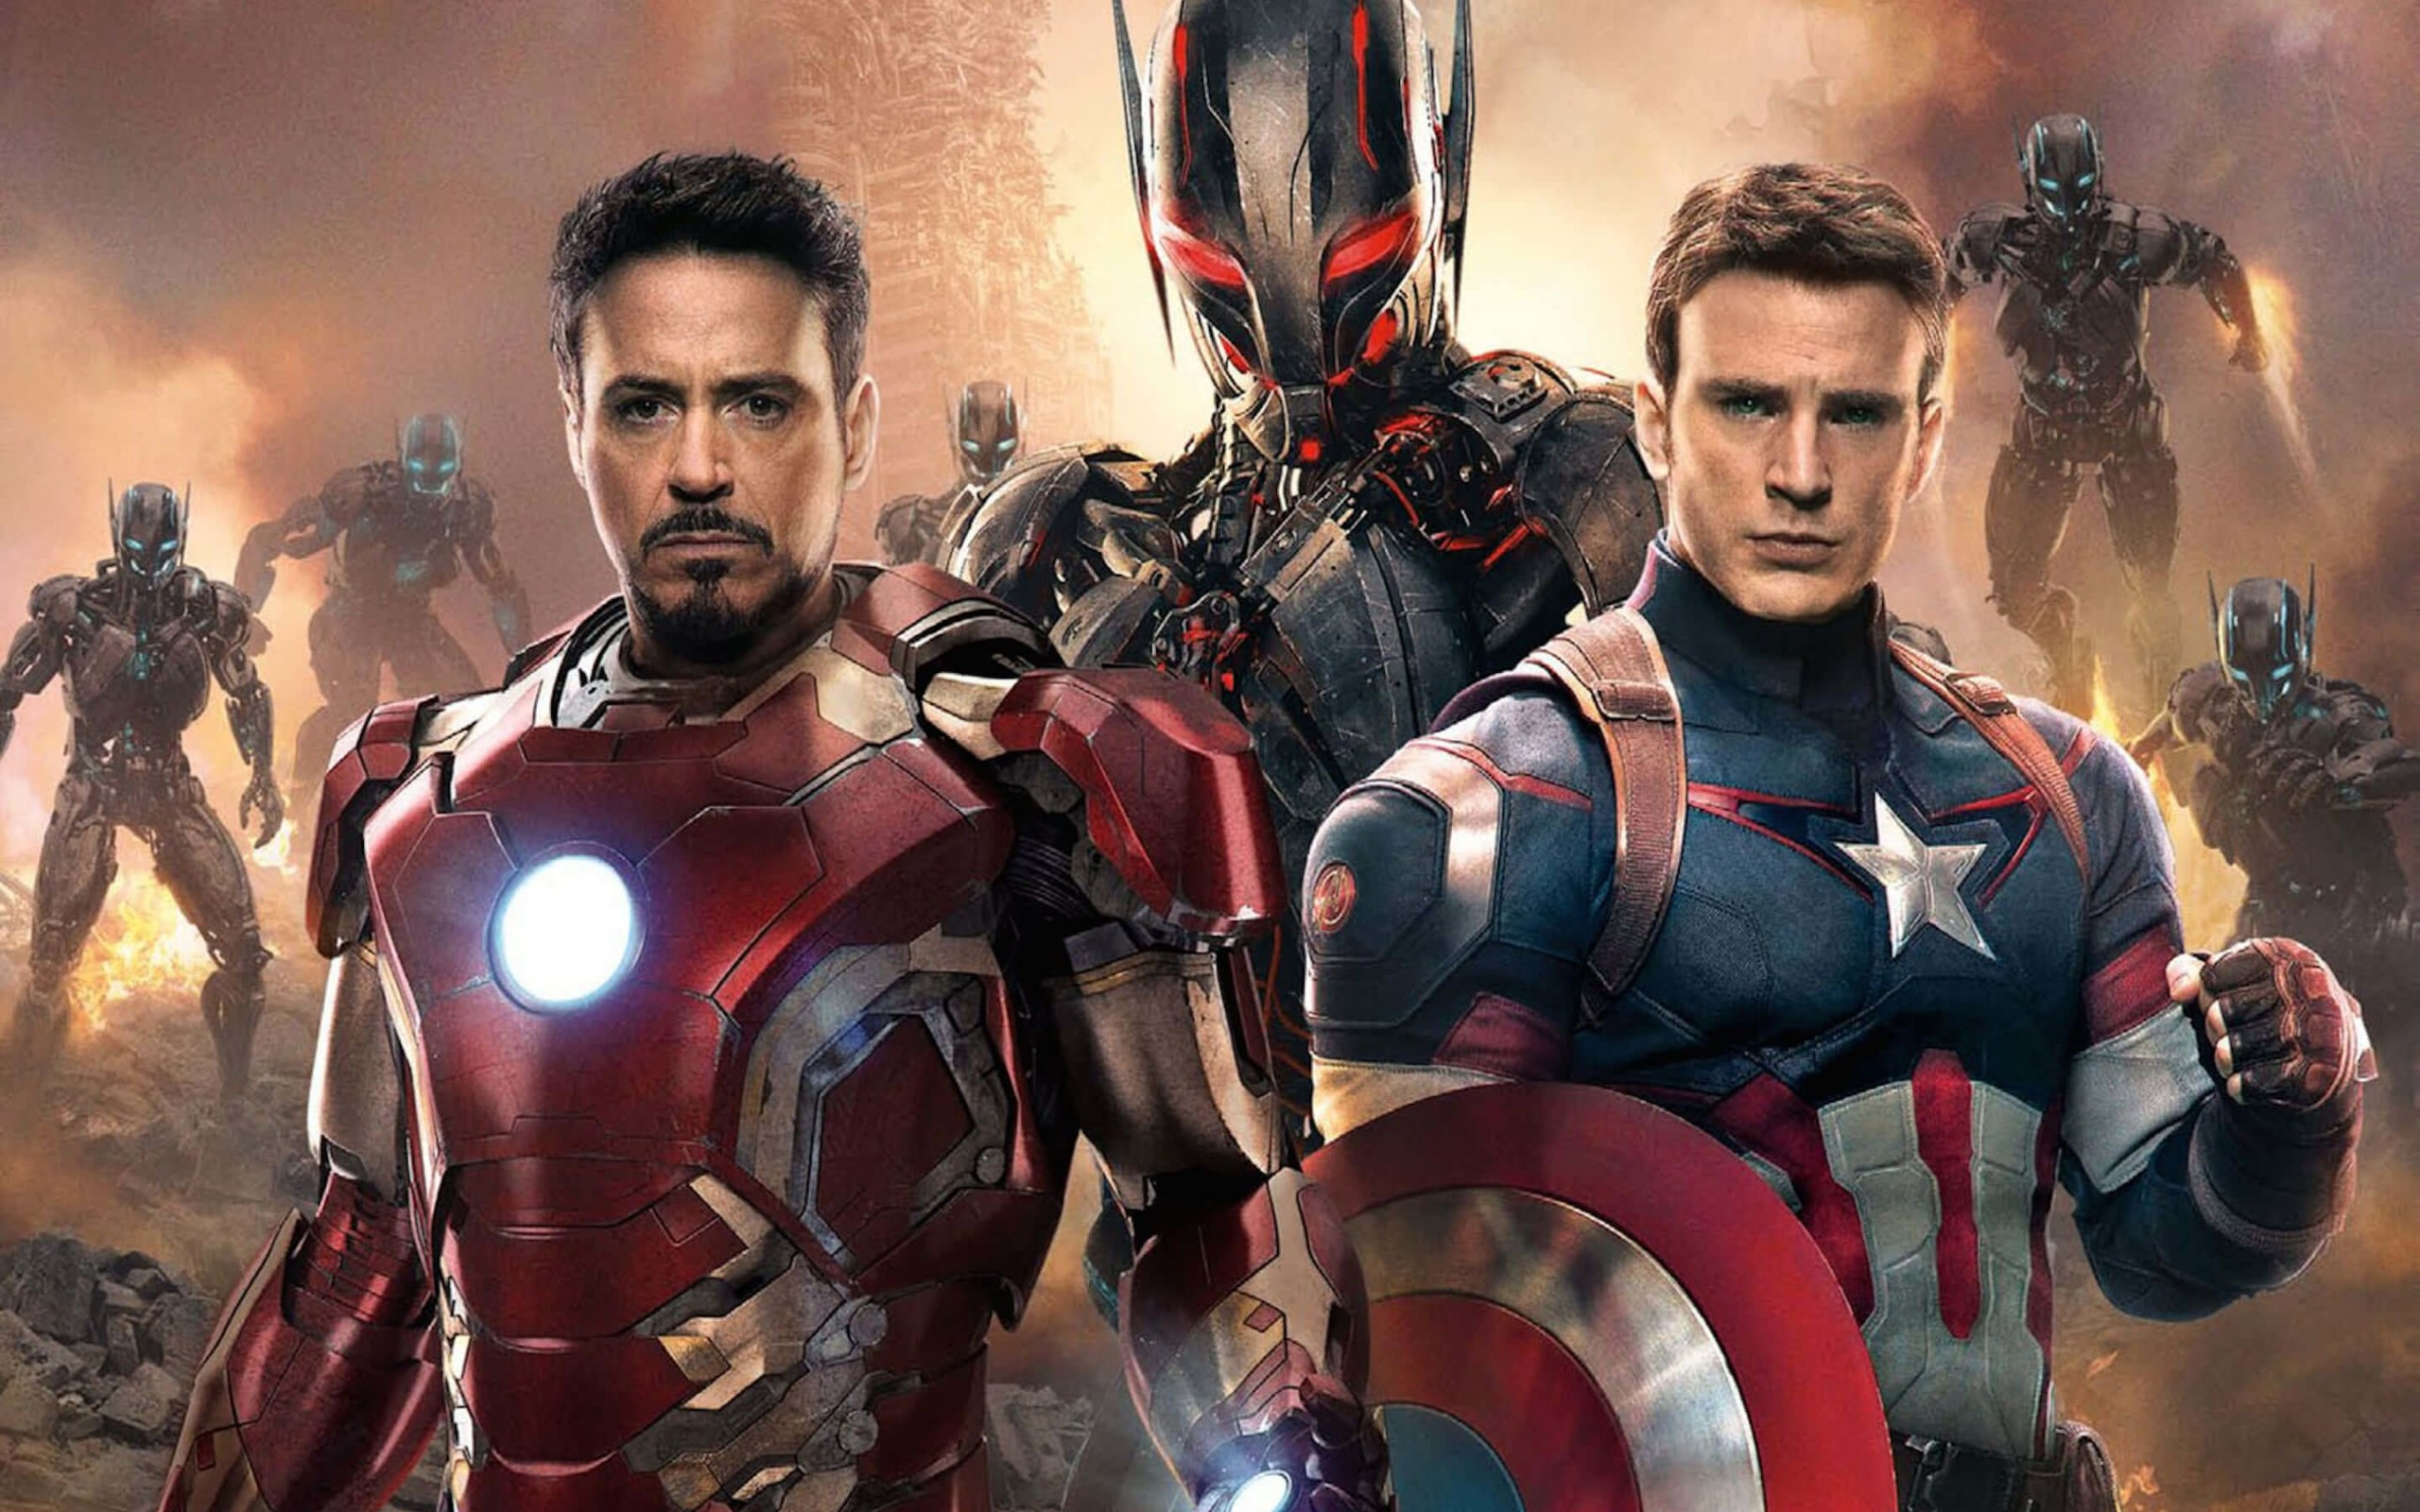 The Avengers: Age of Ultron - Iron Man and Captain America Wallpaper for Desktop 2560x1600